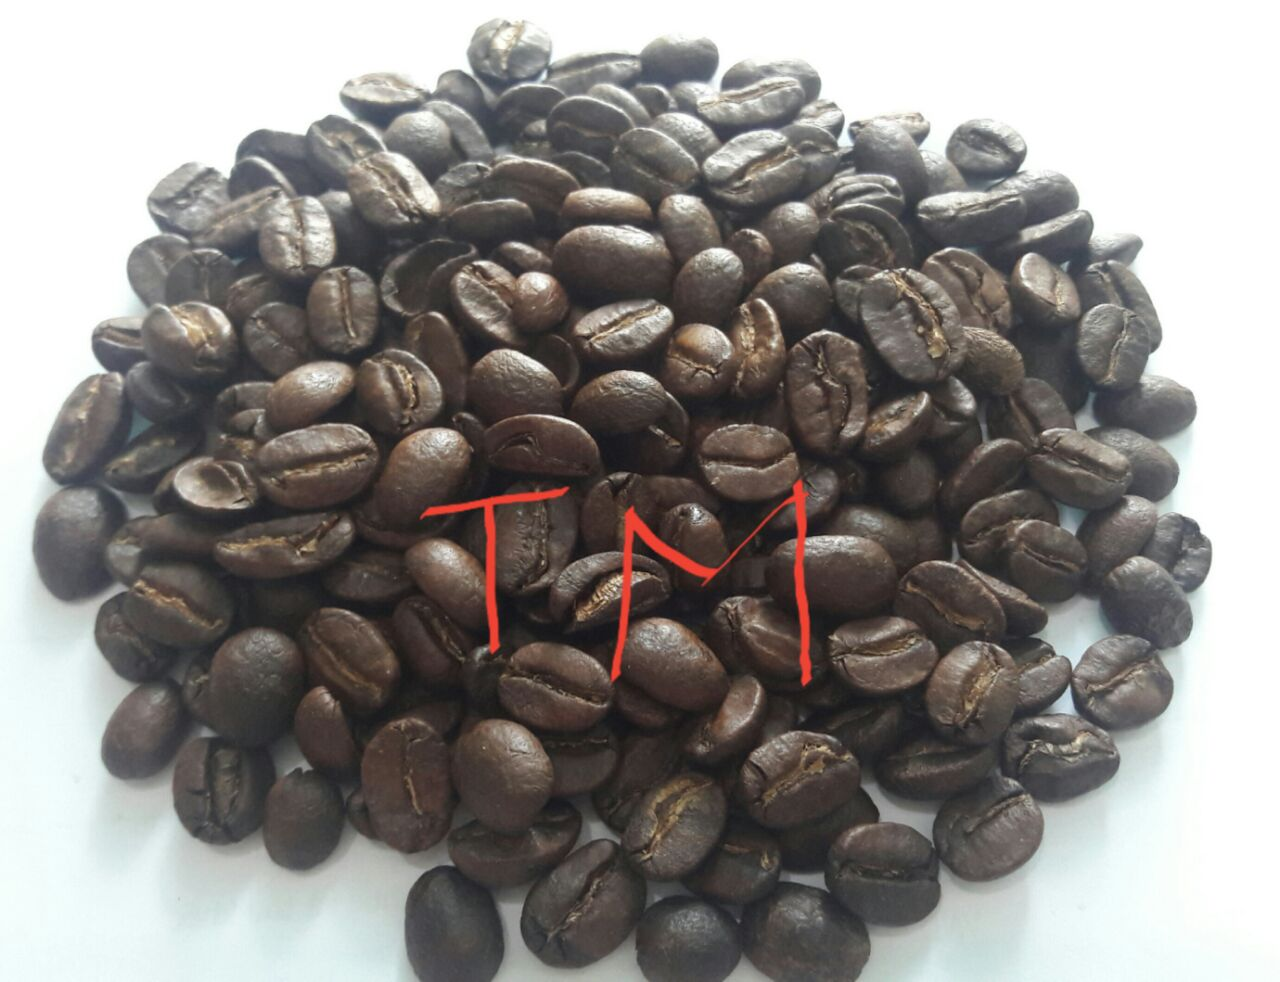 High quality of roasted arabica coffee beans